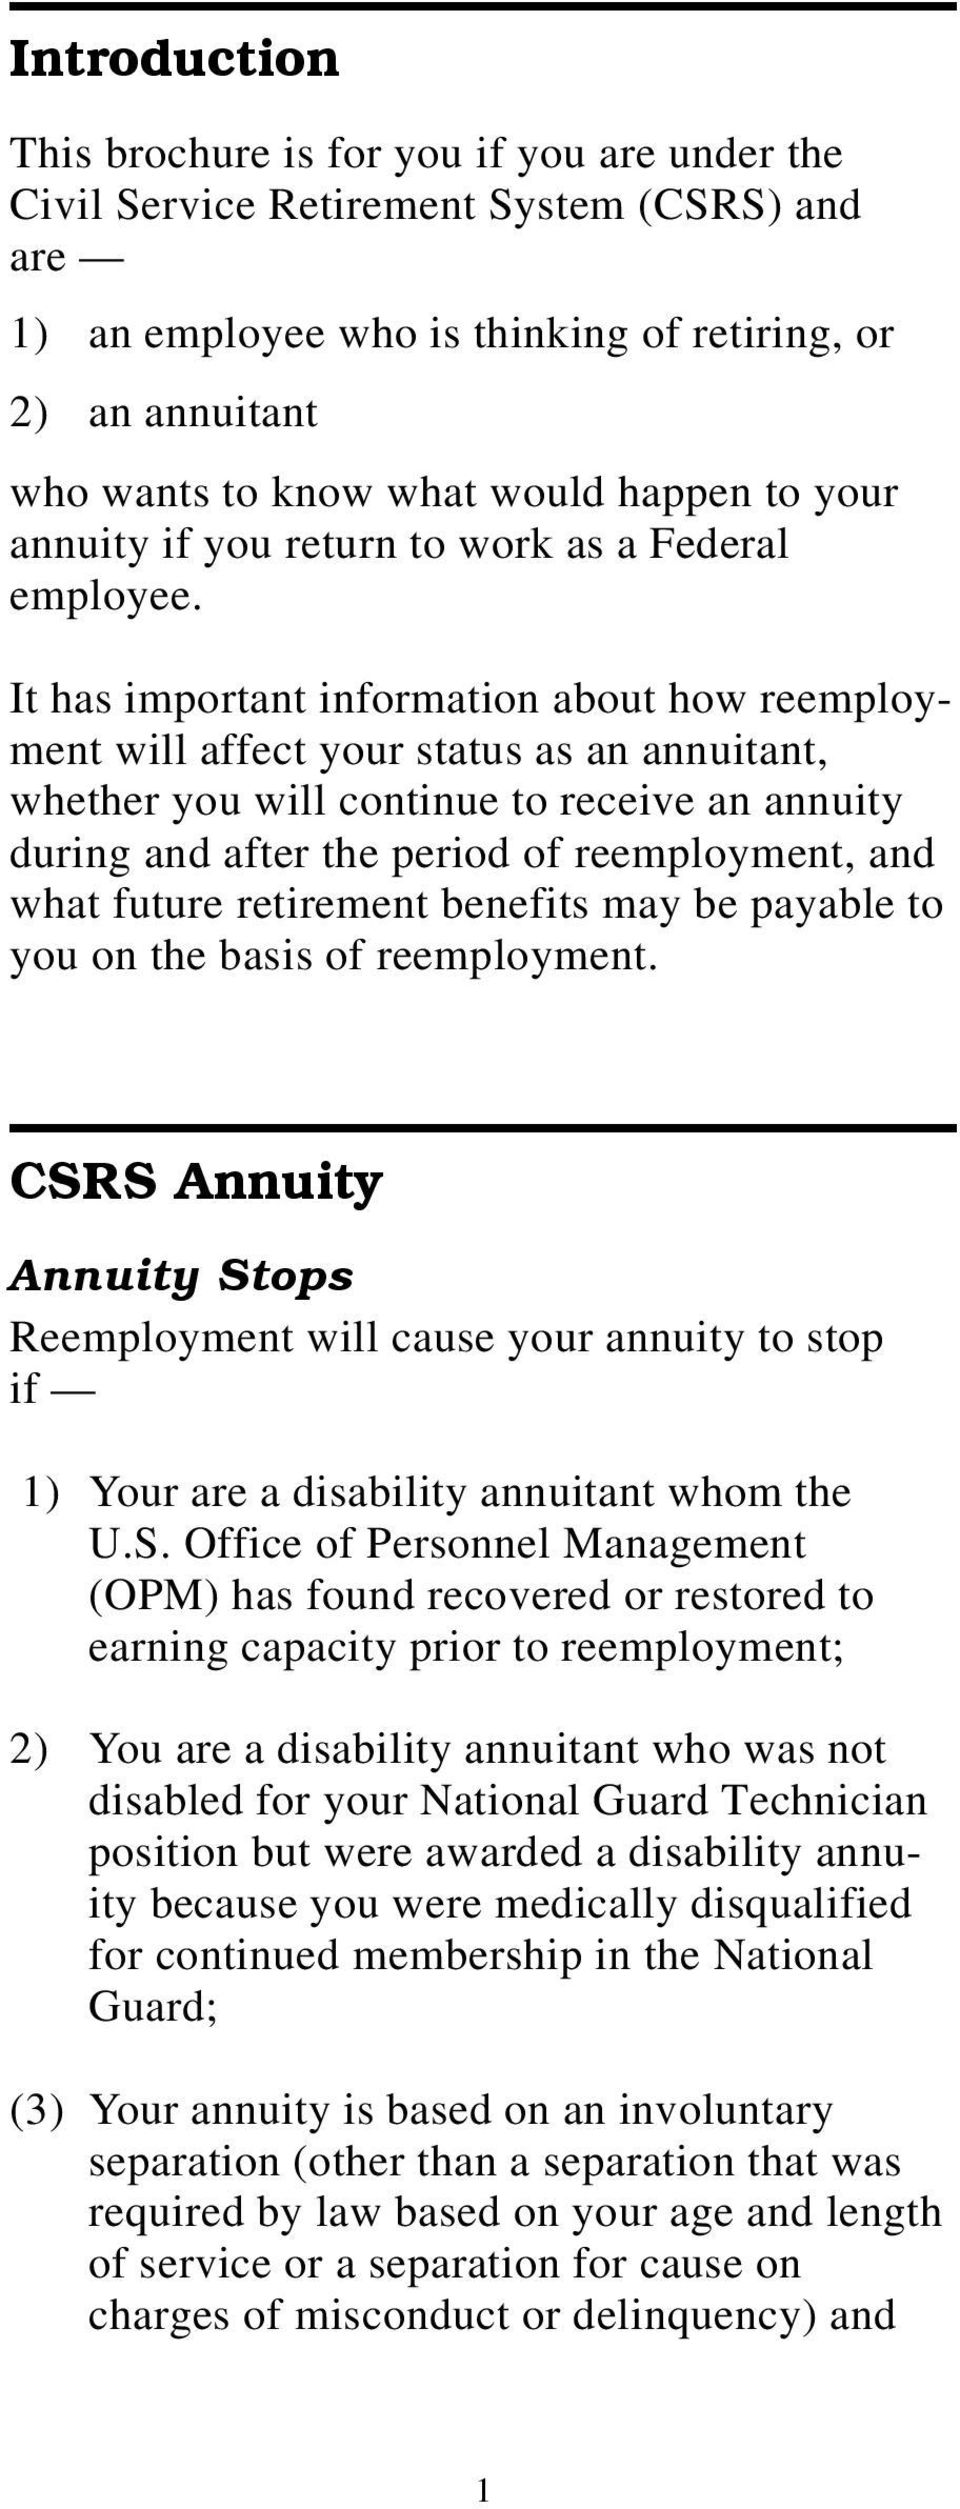 It has important information about how reemployment will affect your status as an annuitant, whether you will continue to receive an annuity during and after the period of reemployment, and what